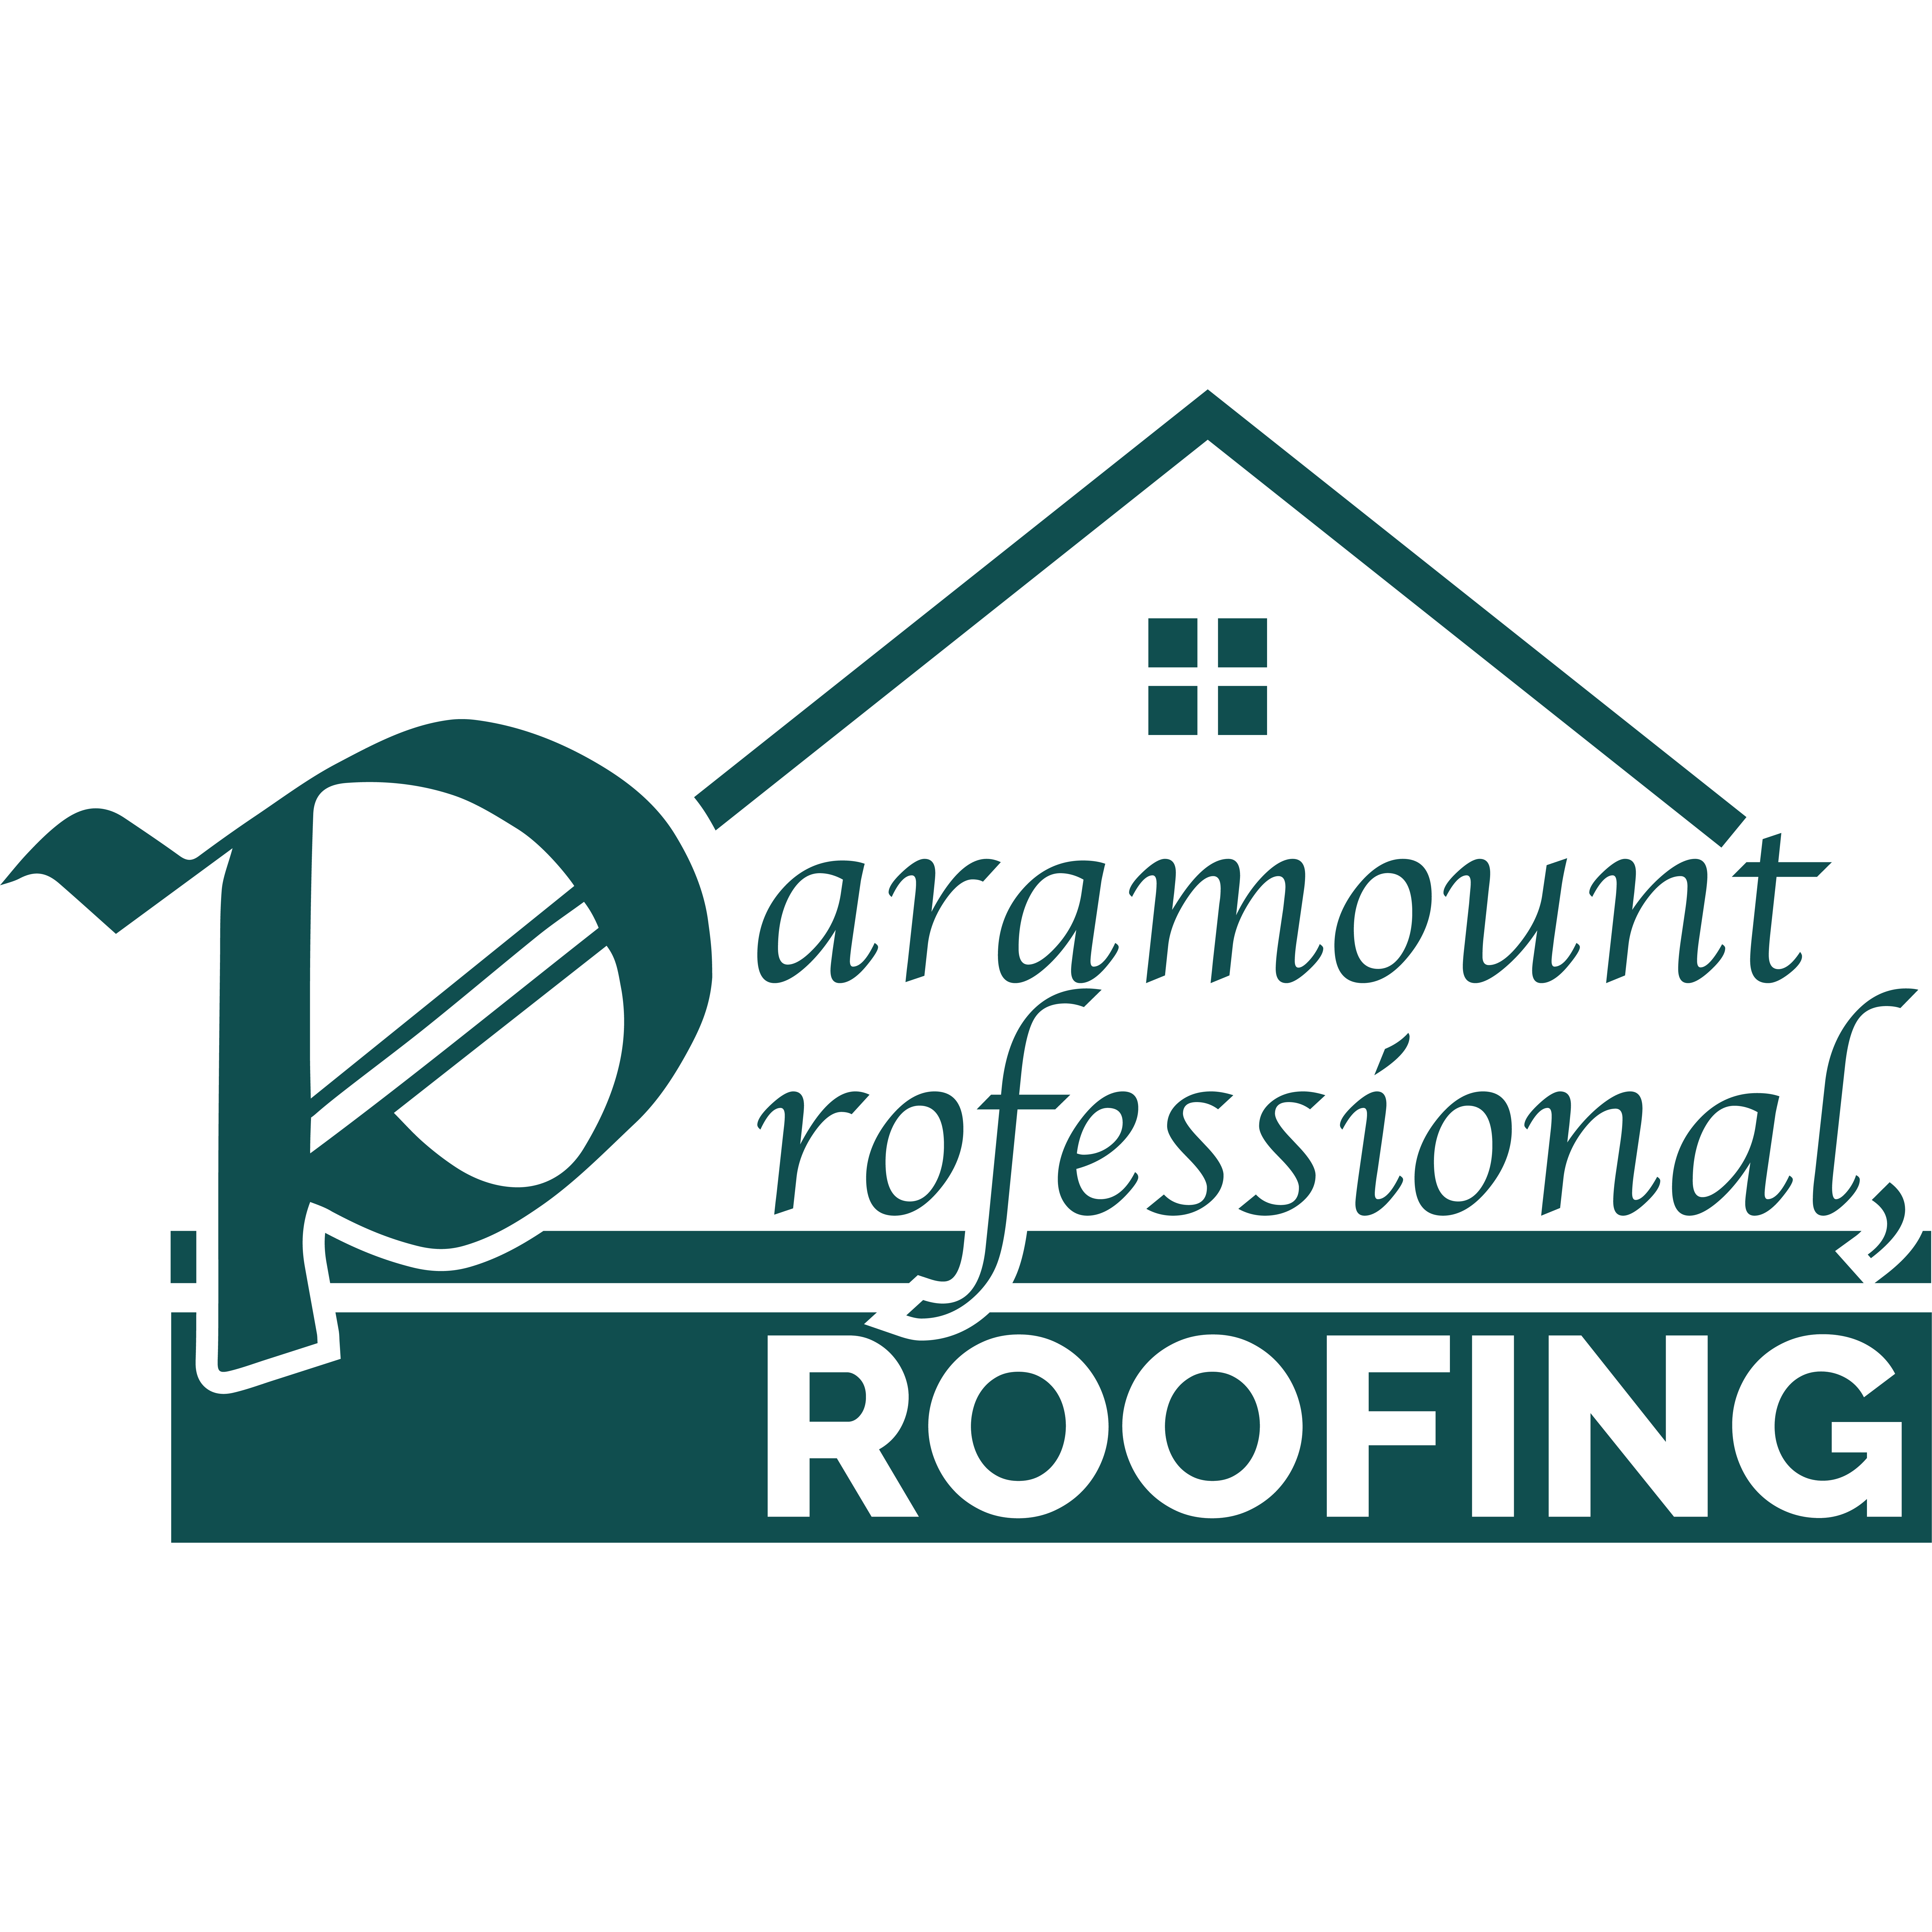 Paramount Professional Roofing